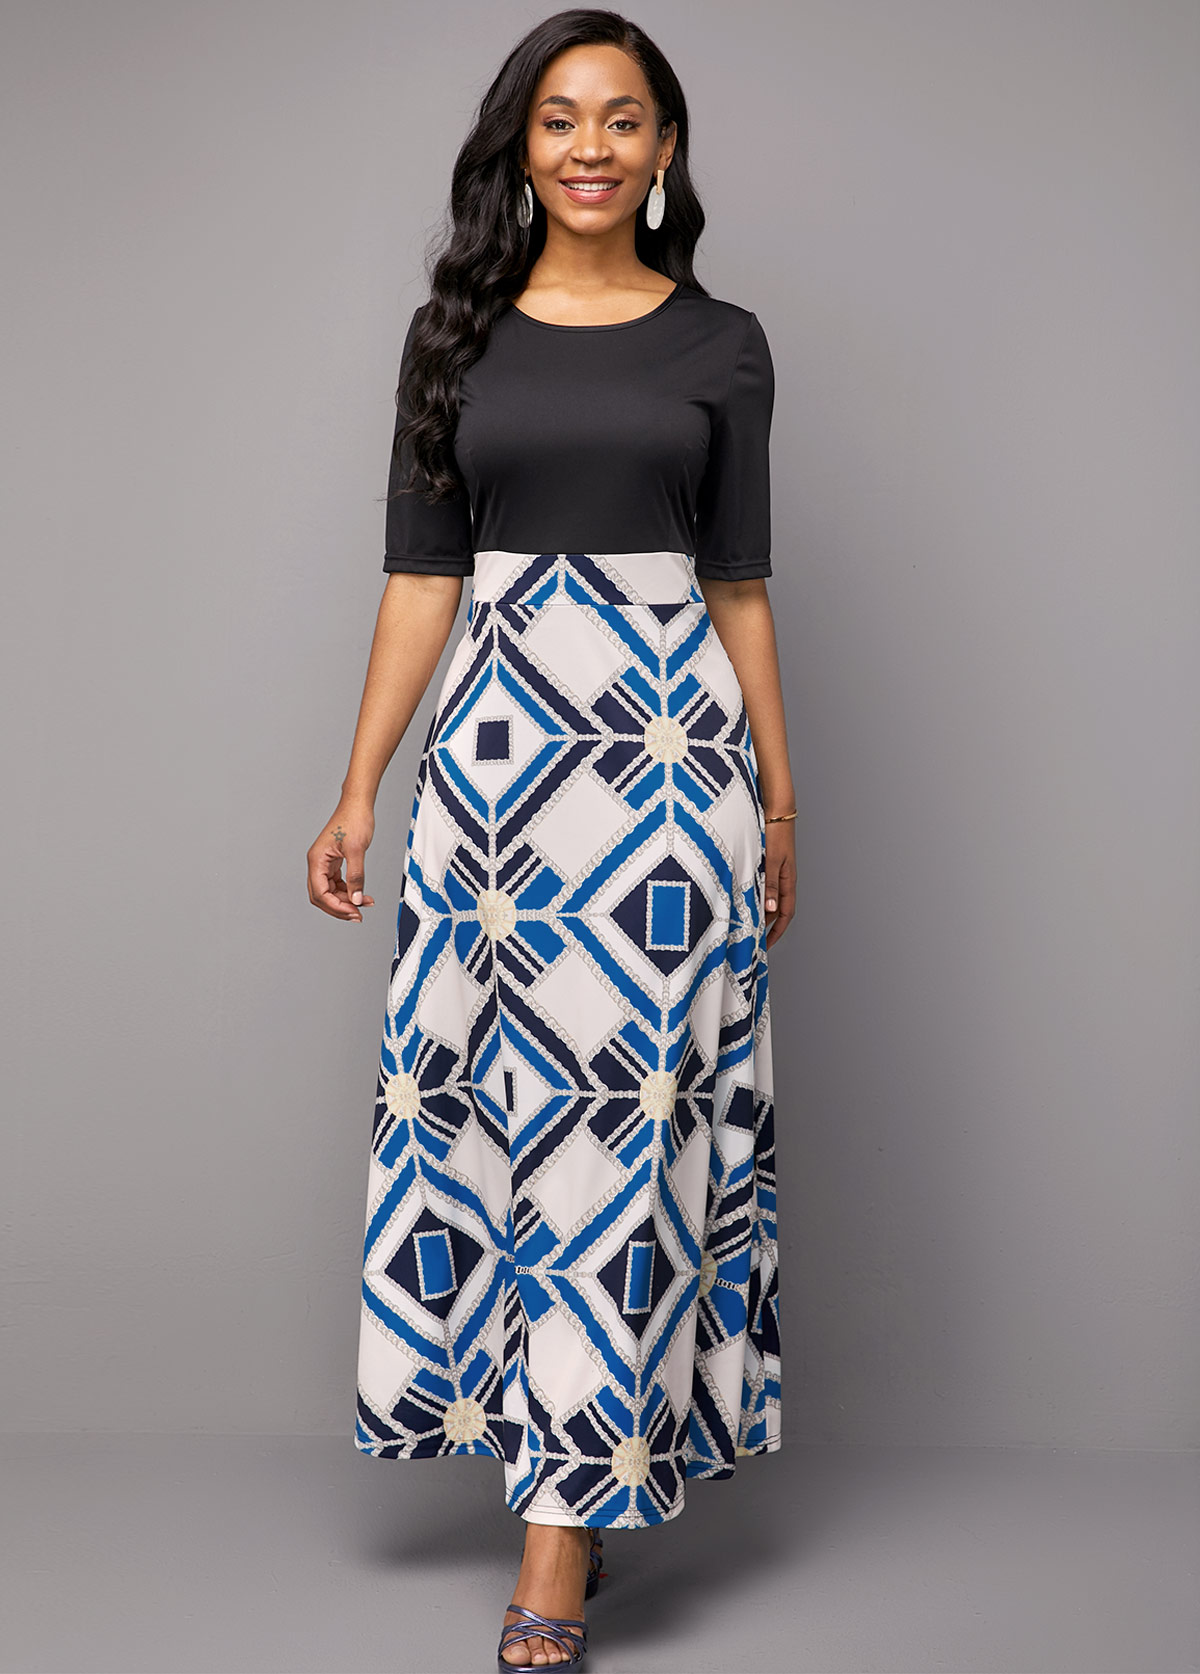 Geometric Print Round Neck Half Sleeve Dress